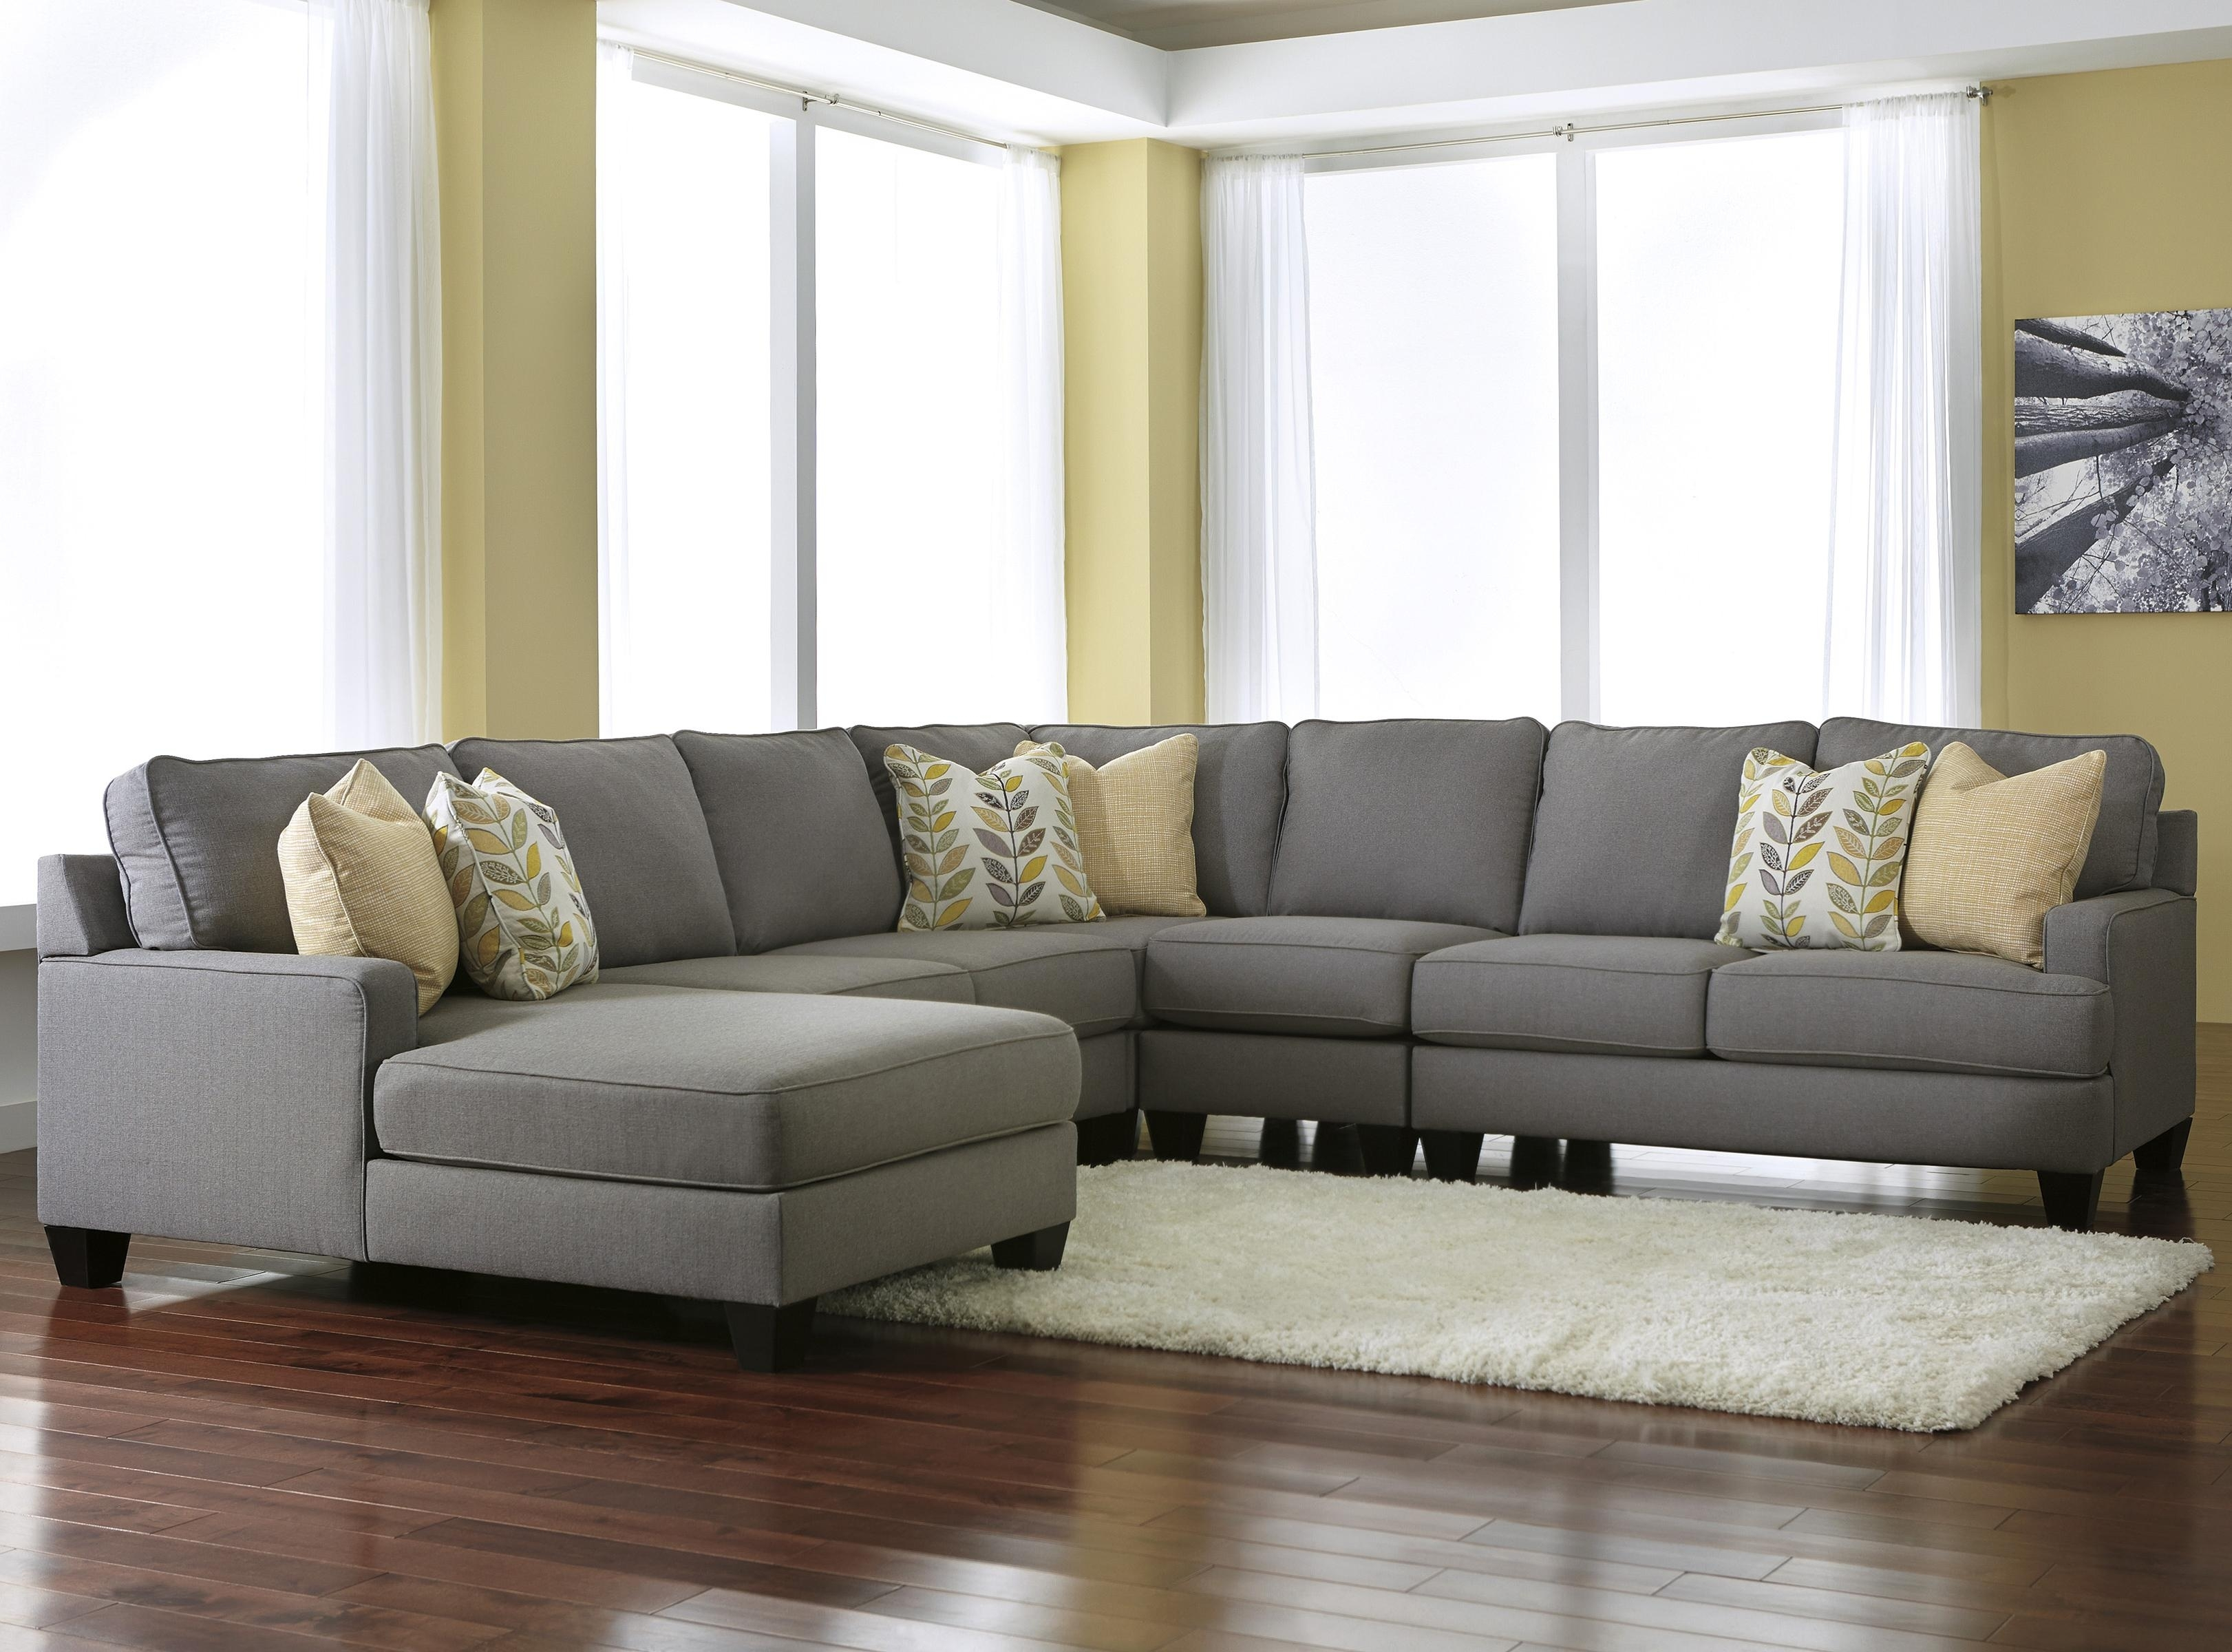 Signature Designashley Chamberly – Alloy Modern 5 Piece With Regard To St Cloud Mn Sectional Sofas (View 5 of 10)